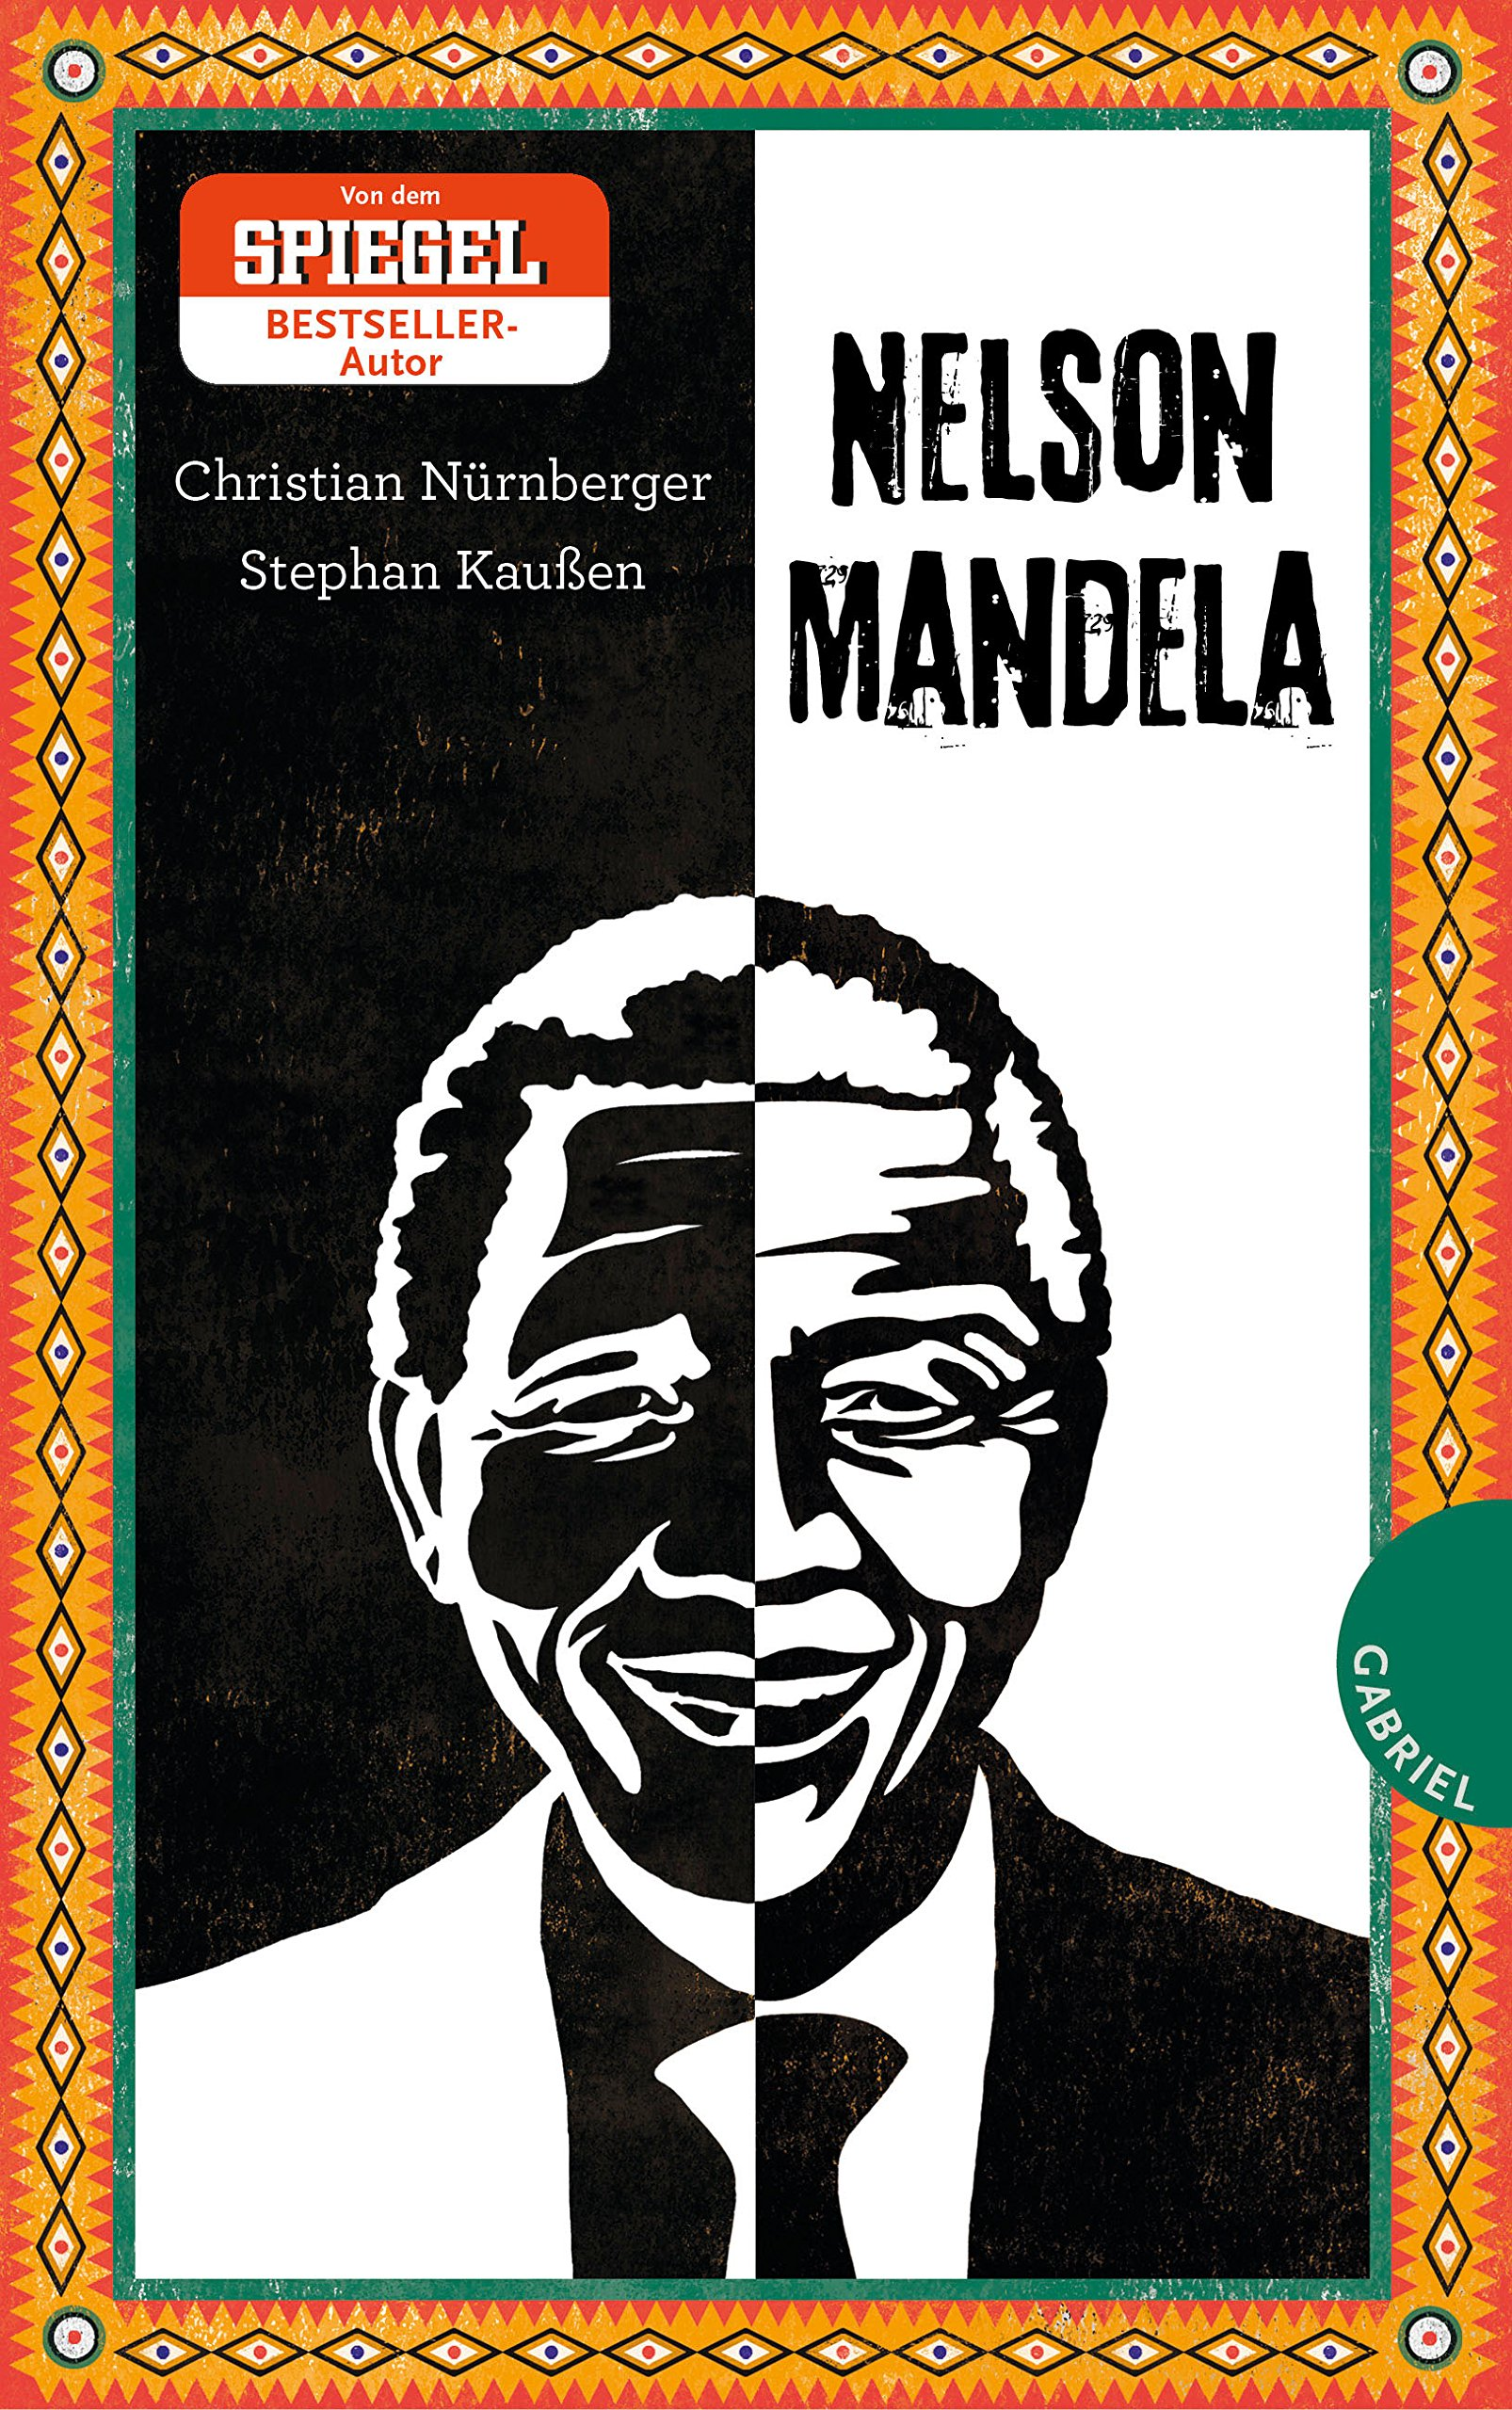 Nelson Mandela Amazon Christian Nürnberger Stephan Kaußen